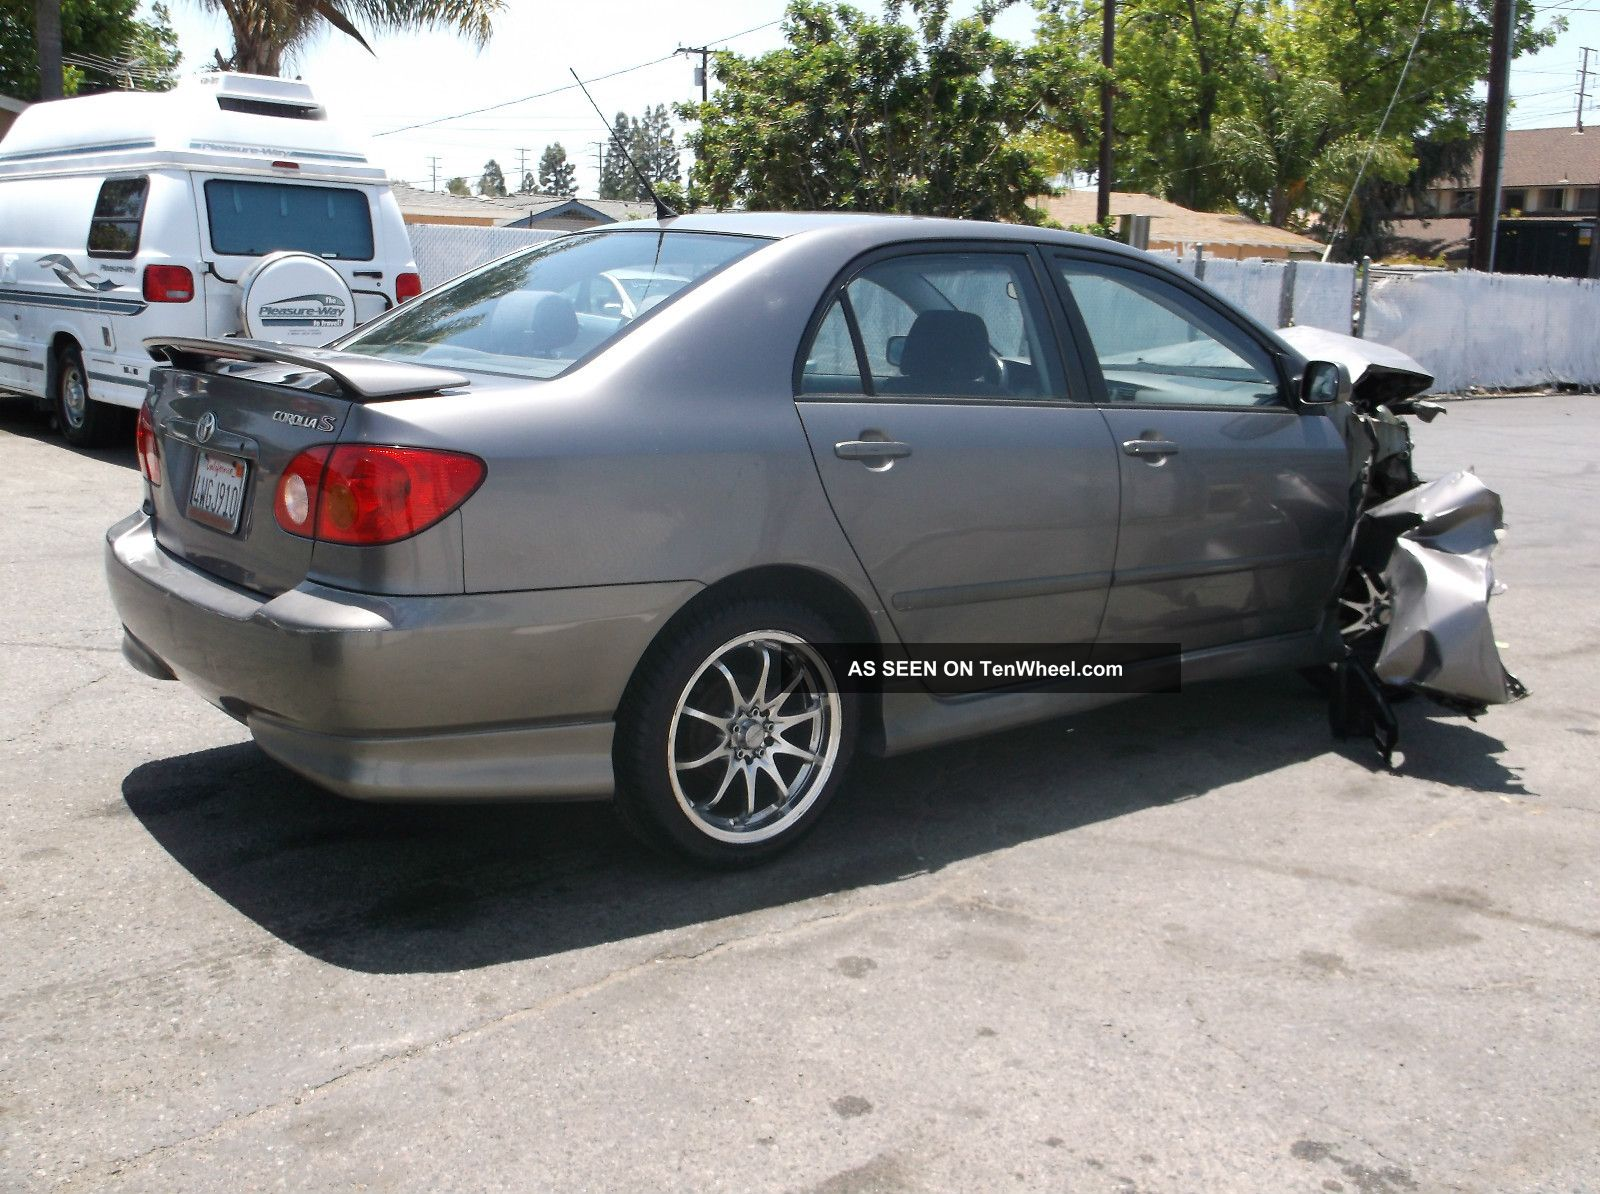 Toyota Corolla Lgw on 2002 Lincoln Ls V8 Exhaust